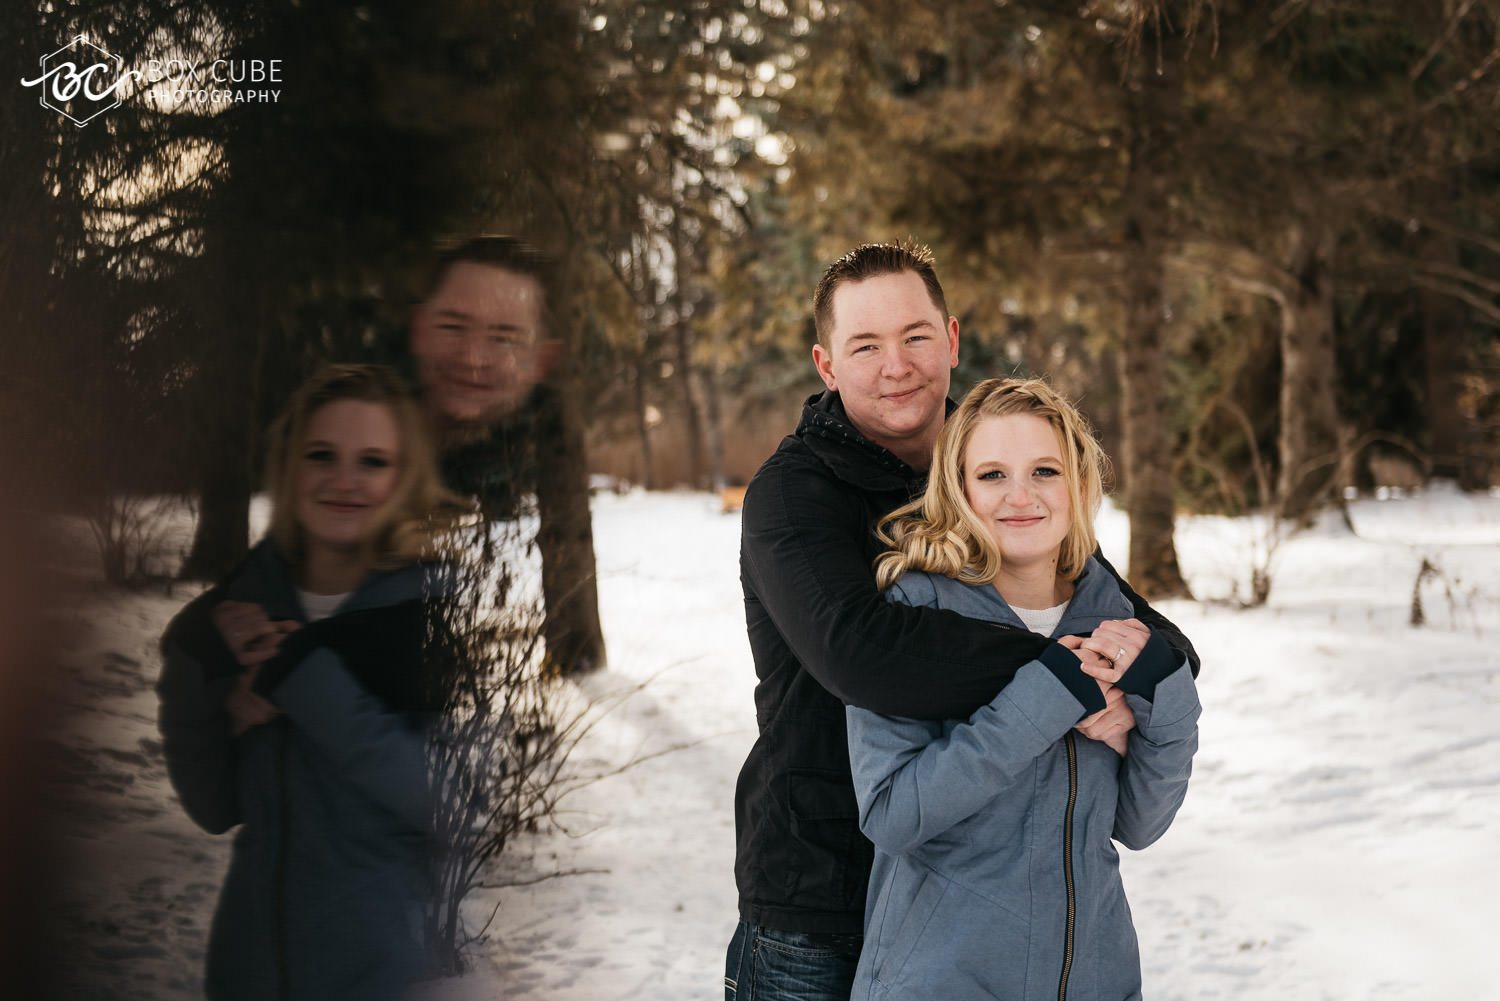 Engagement Photos at William Hawerlak Park by Box Cube Photography with Prism Effect